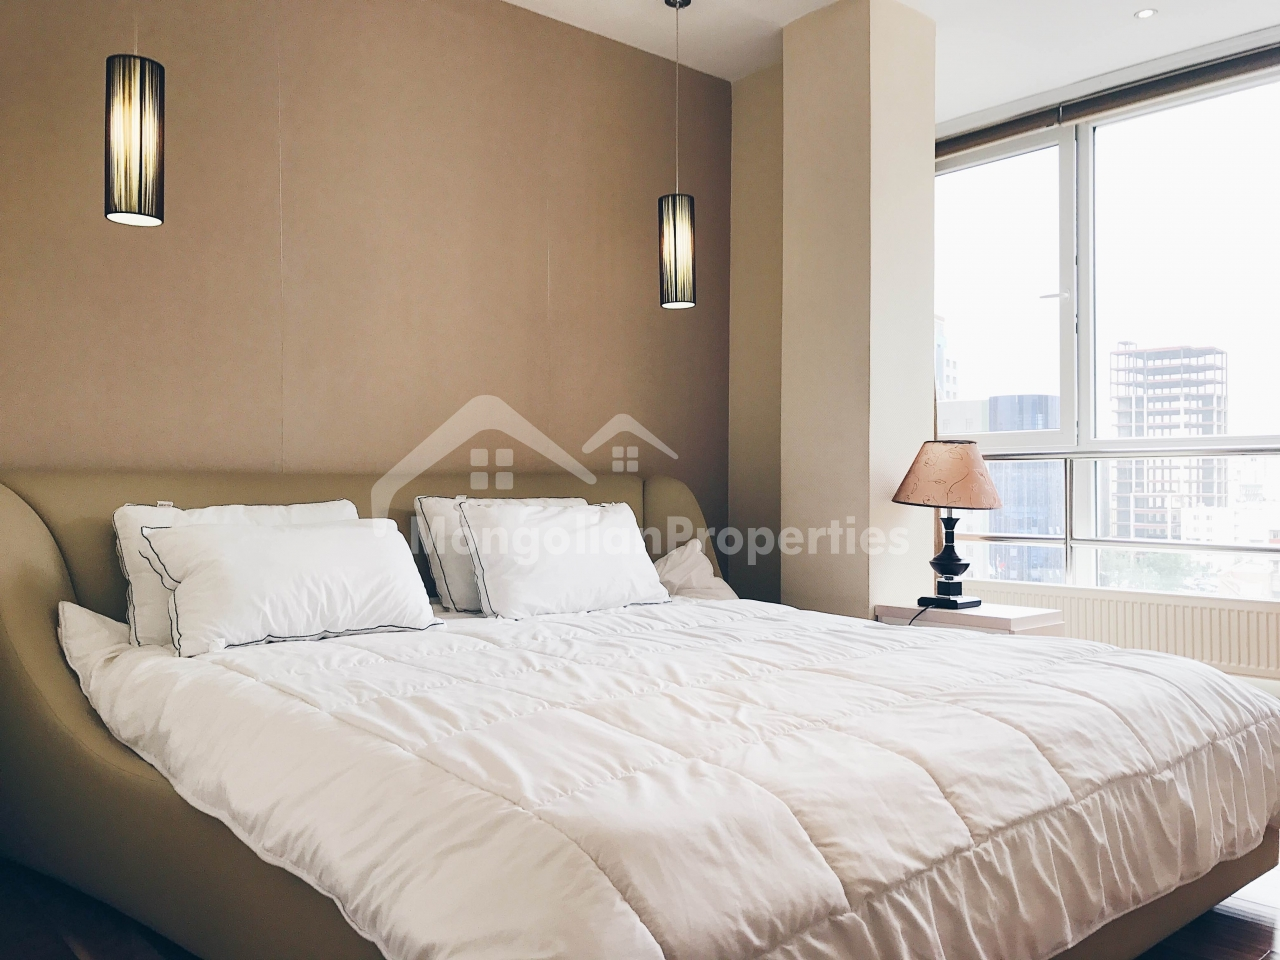 FOR RENT: SPACIOUS, COZY 2 BEDROOM APARTMENT AT TEMPLE ...